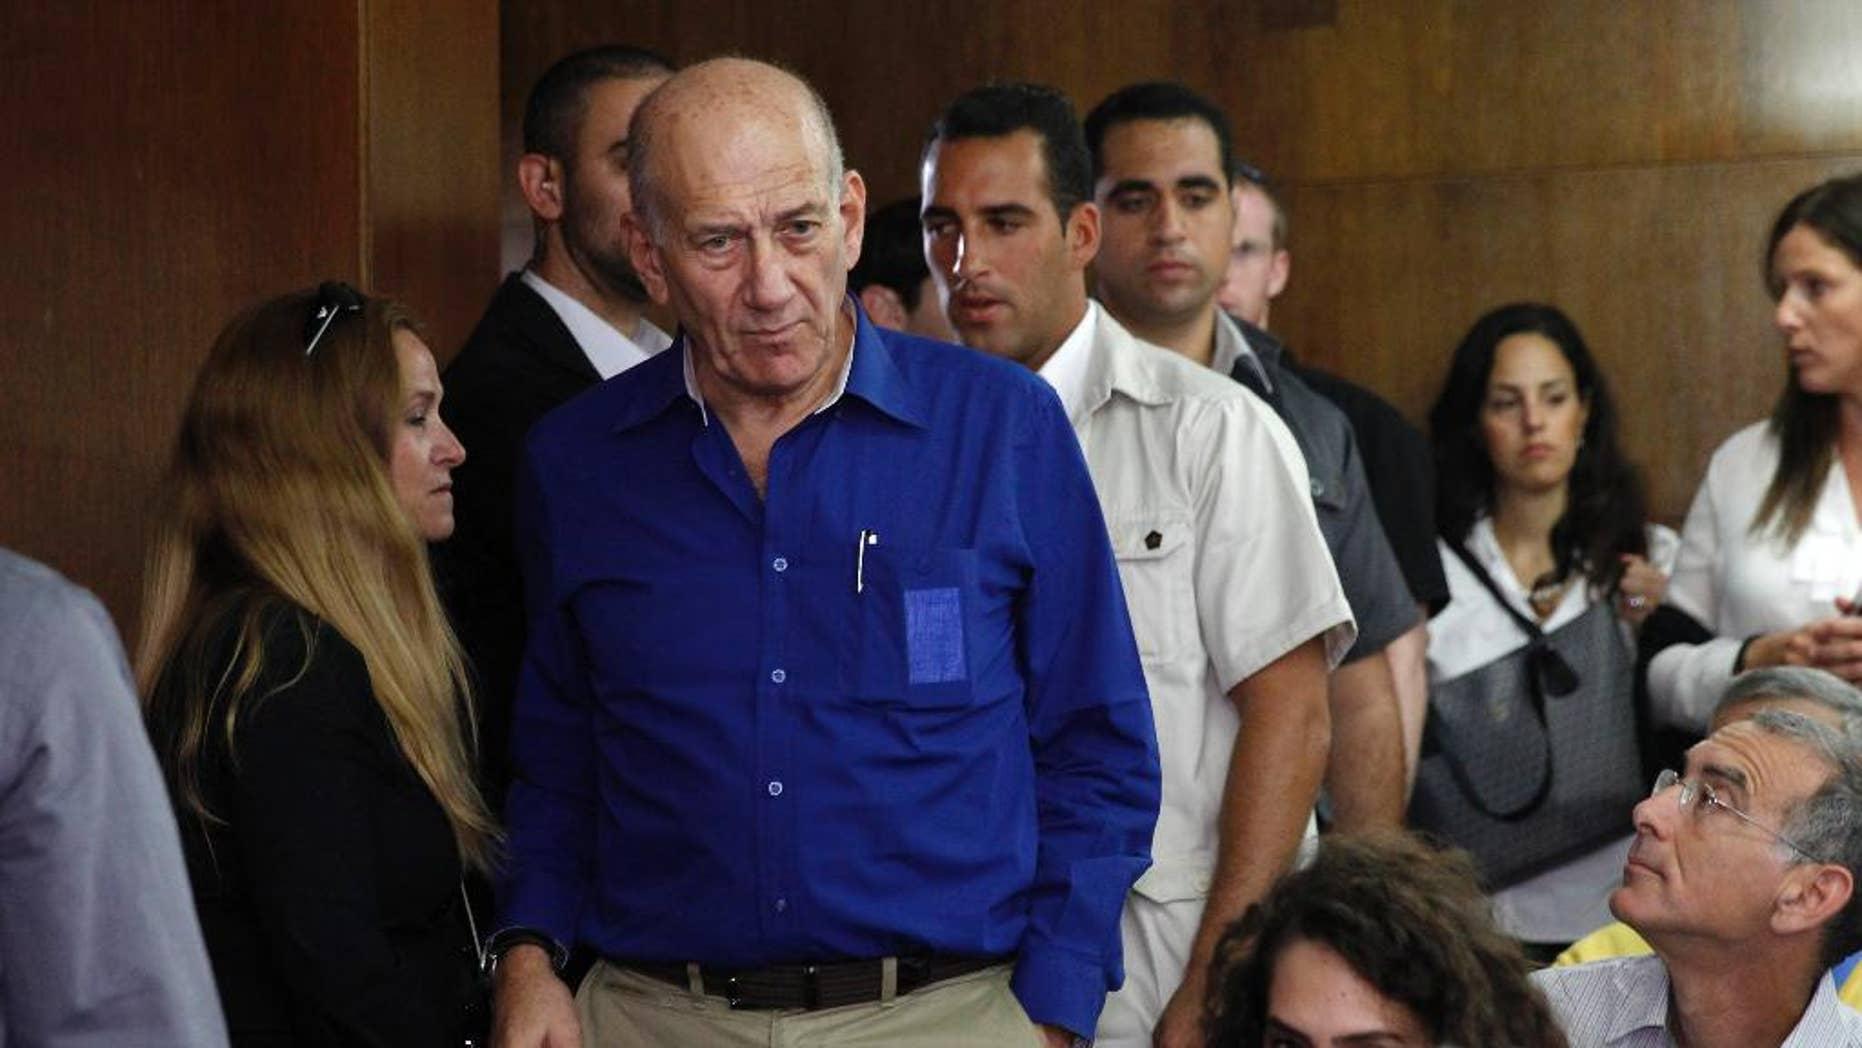 FILE - This May 13, 2014, file photo shows Israel's former Prime Minister Ehud Olmert at the Tel Aviv District Court in Israel.   Former Prime Minister Olmert was found guilty Monday, March 30, 2015, of fraud and breach of trust in a retrial on corruption charges, three years after being acquitted. (AP Photo/Finbarr O'Reilly, File)